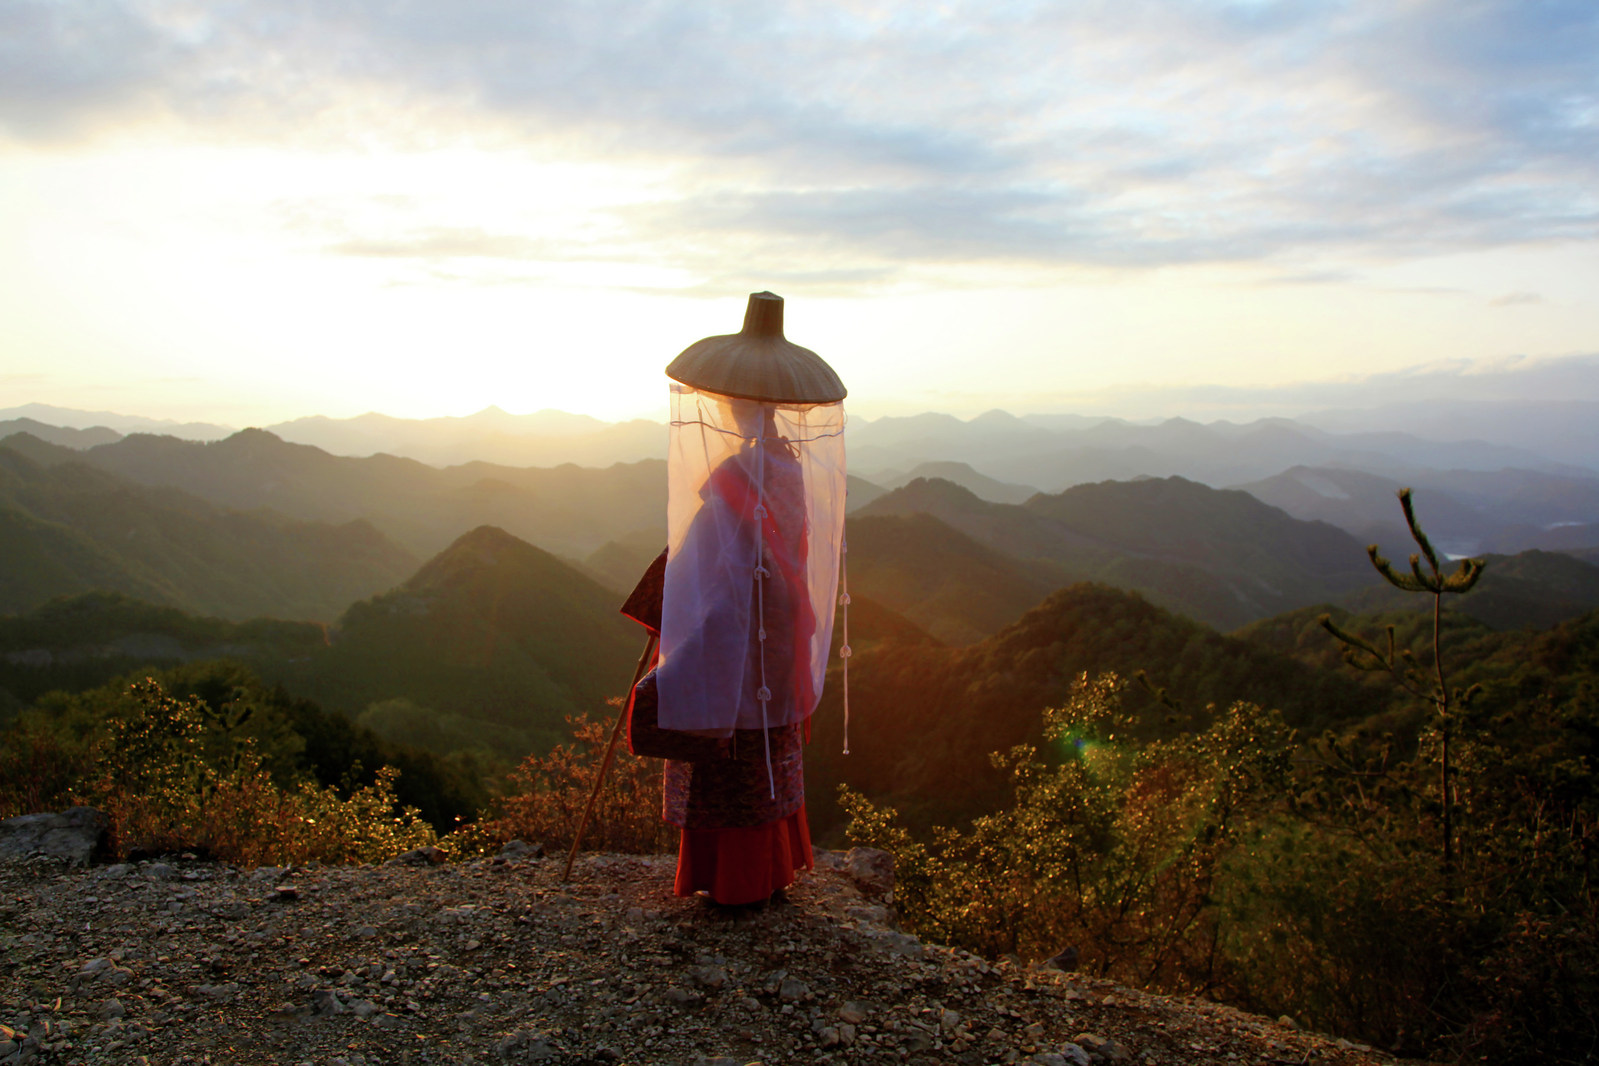 REI Adventures Japan Hiking - Kumano Kodo & Nakasendo: Ancient tradition meets modern life on this 11-day trekking excursion from Kyoto to Tokyo.